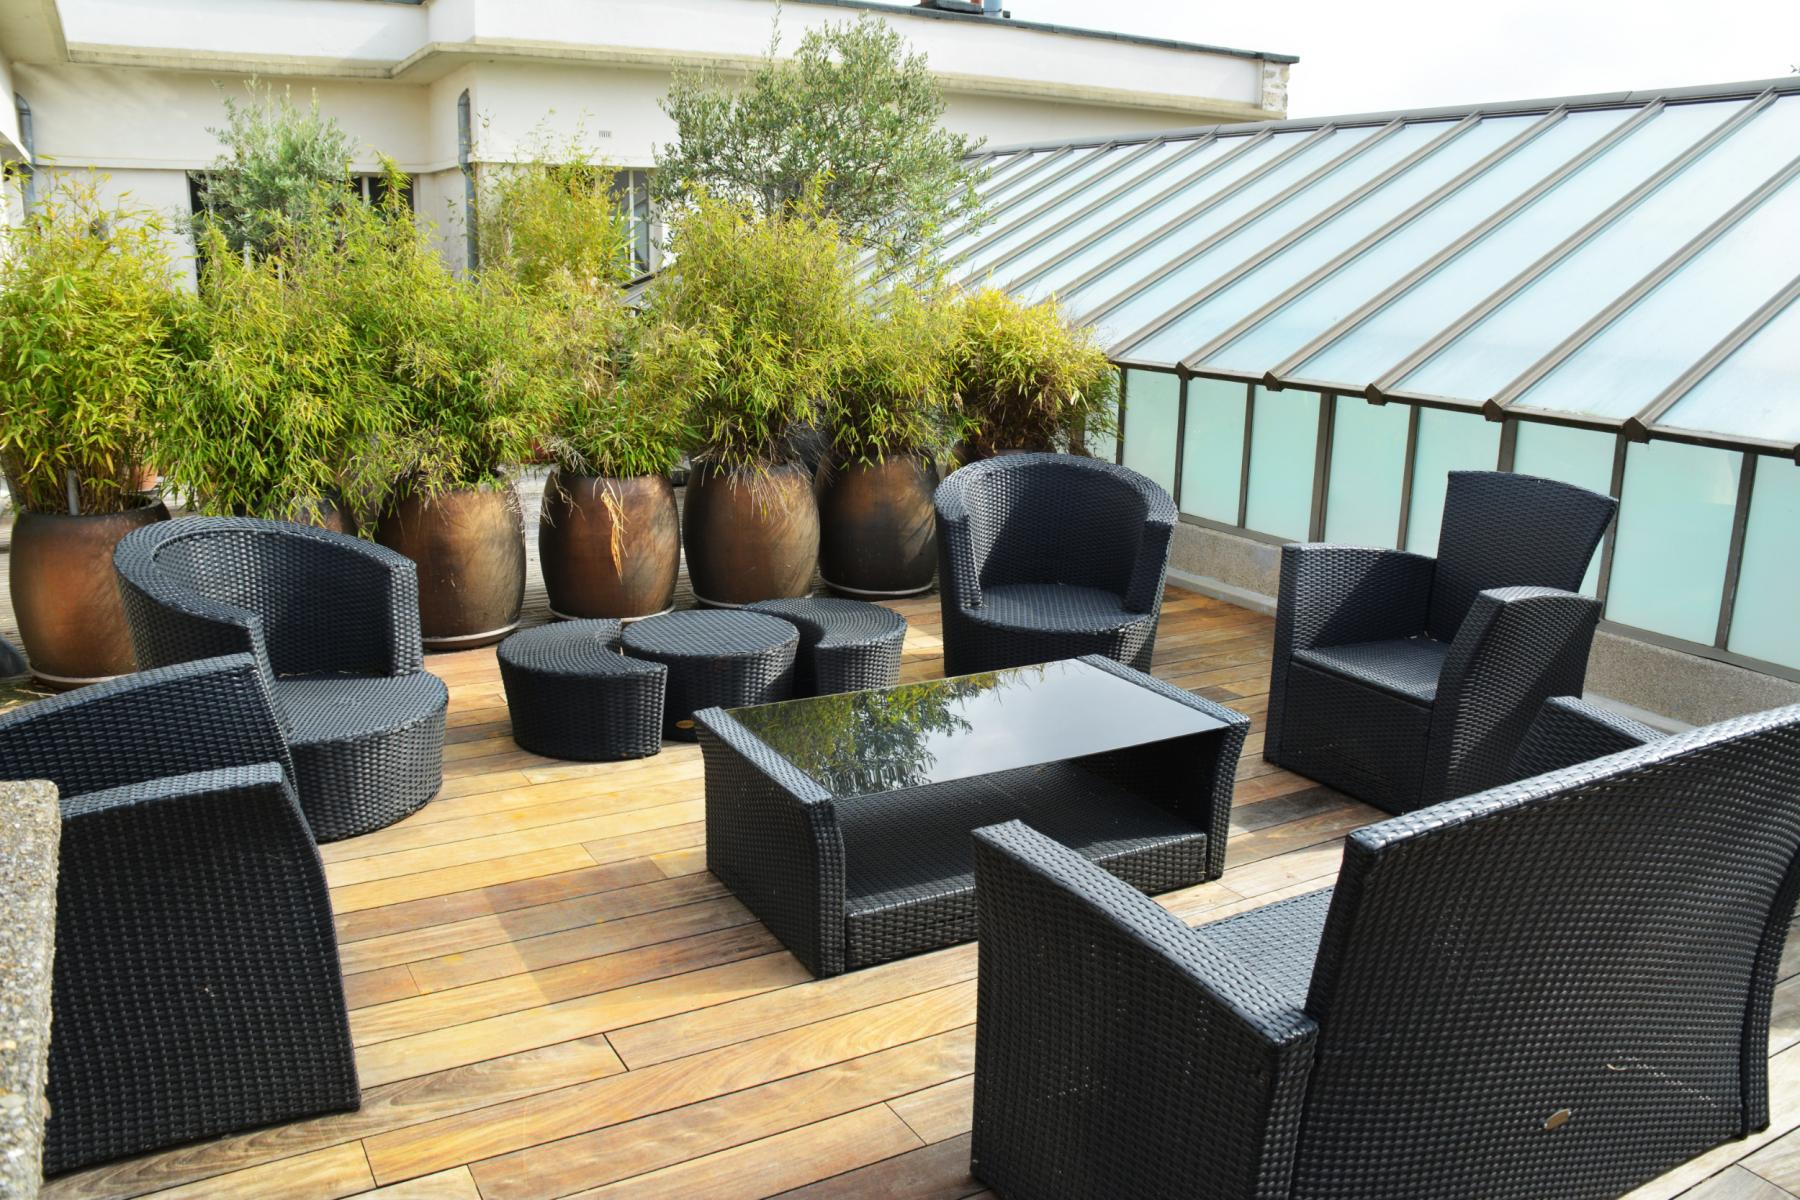 A furnished and plant-decorated terrace is one of the favourite places among the members of our community